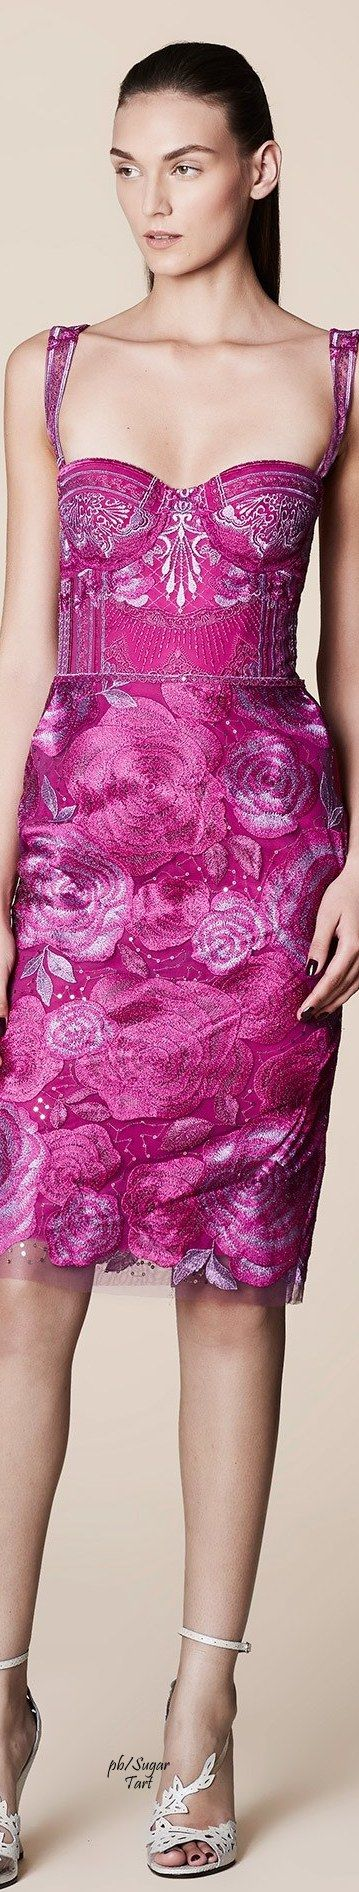 Marchesa Notte - Spring 2017                                                                                                                                                                                 More